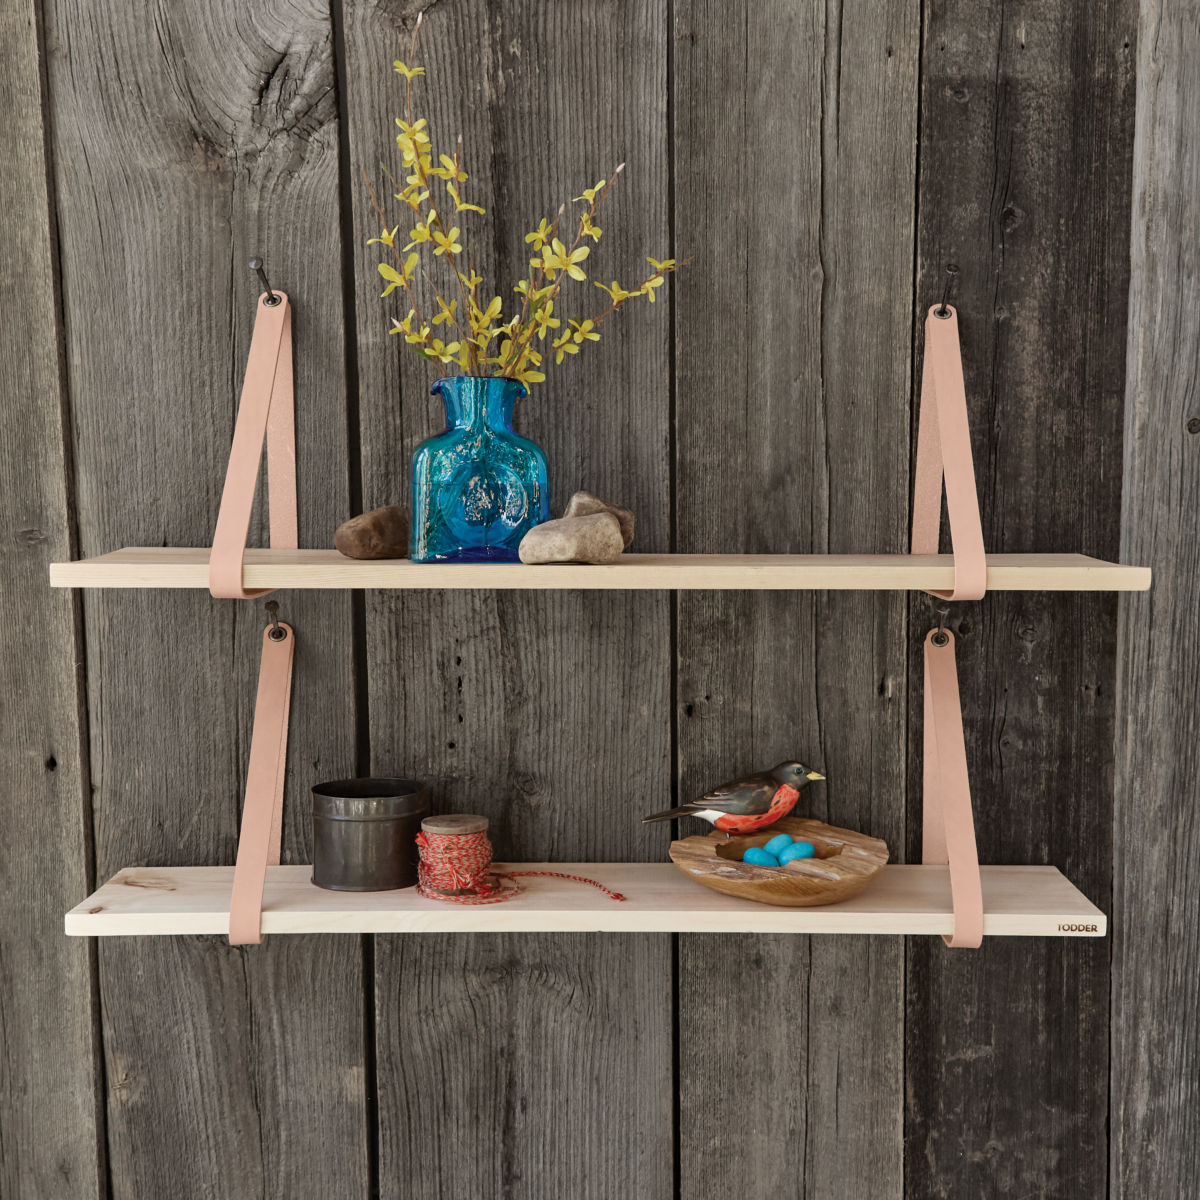 Suspended Wood and Leather Shelf - image number 0